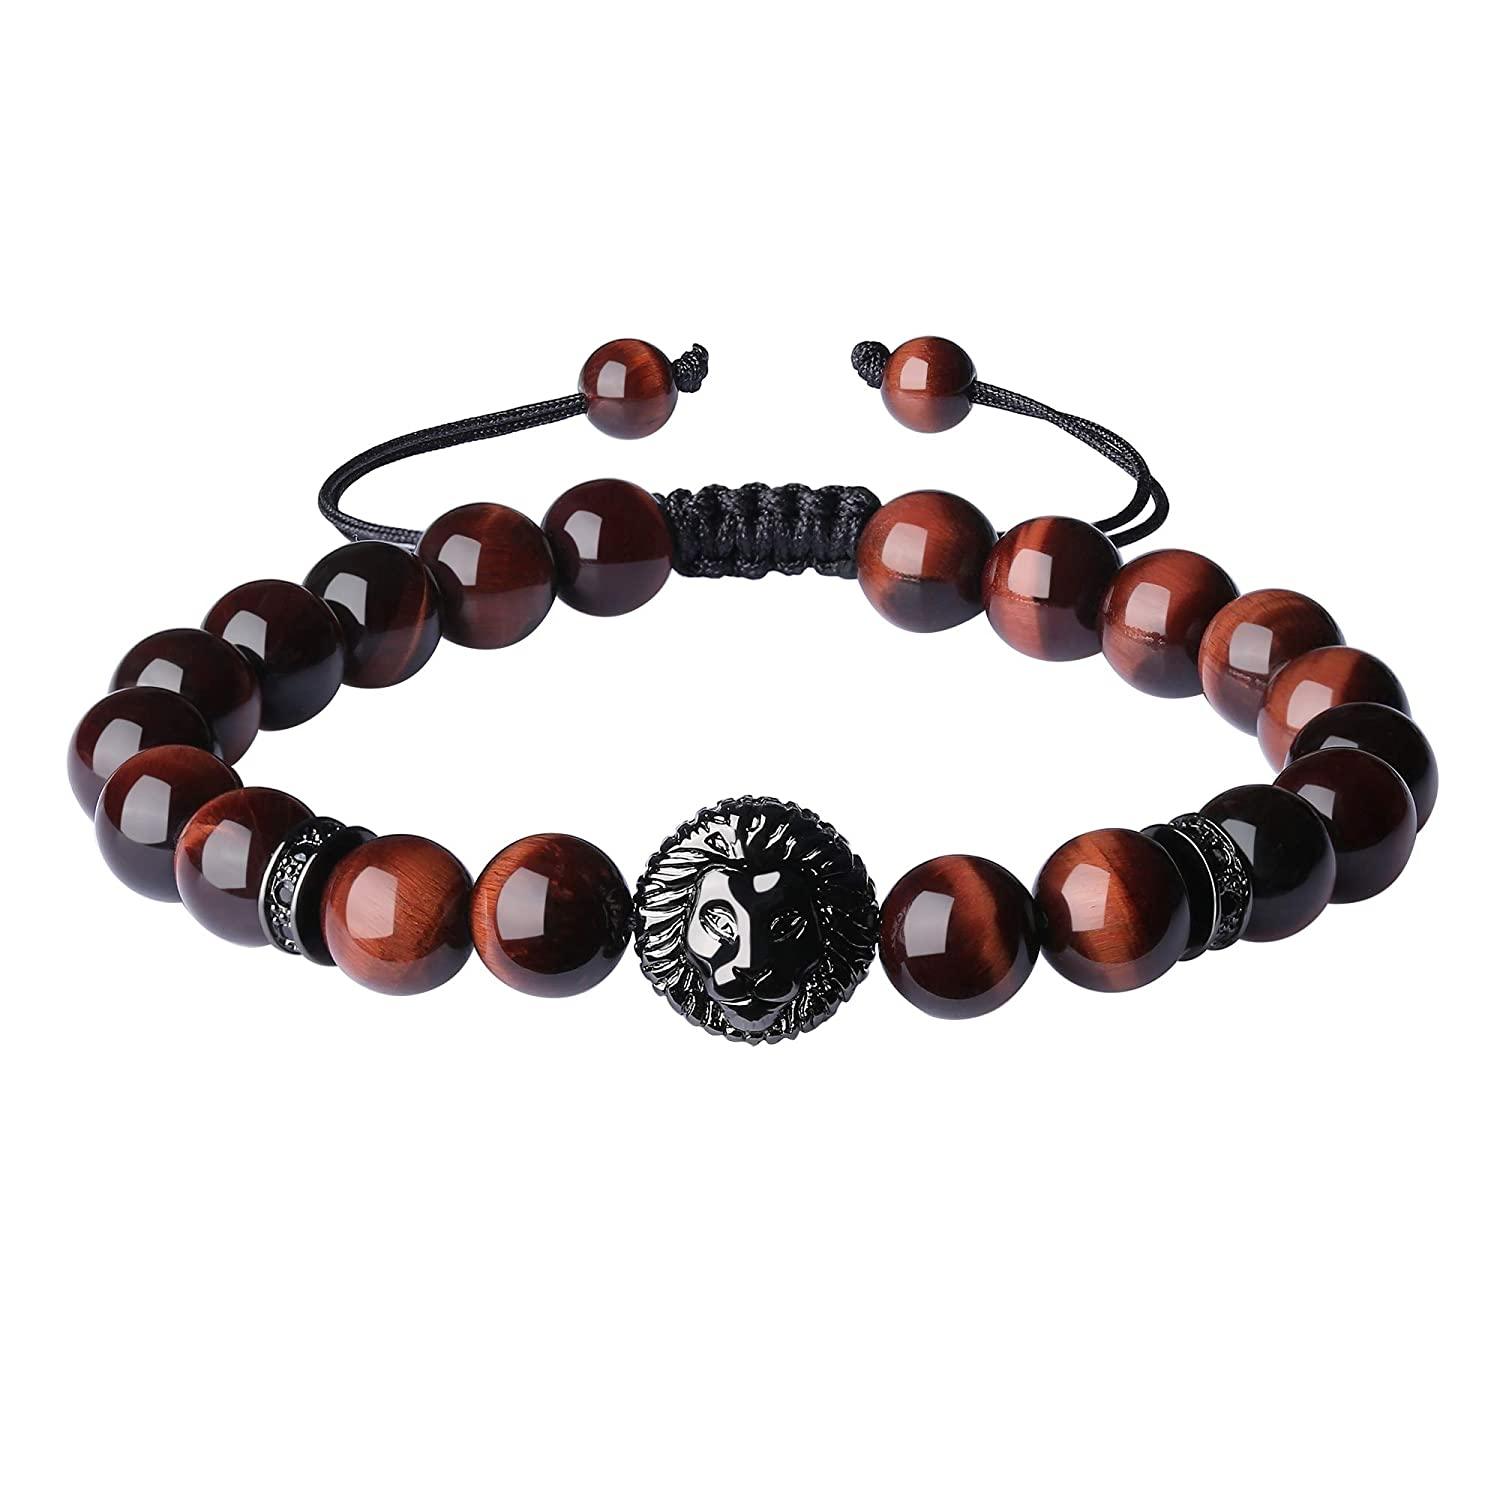 COAI 8mm Shamballa Inspired Semi Precious Stone Beaded Lion Charm Bracelet for Men Women N500-2